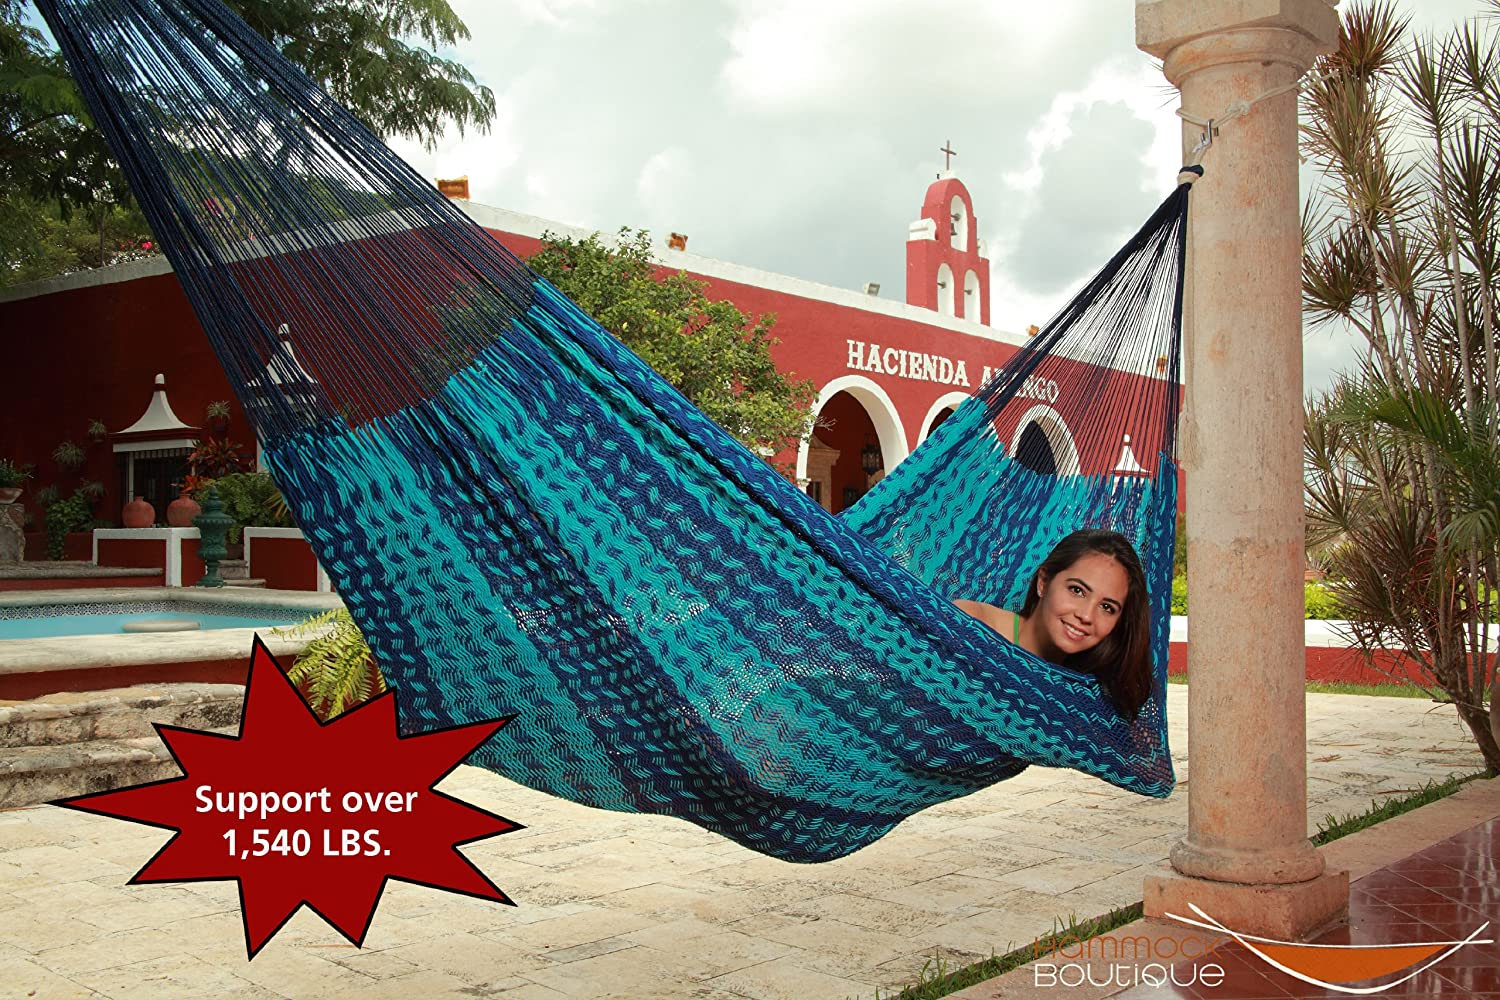 Heavy Duty Hammocks For Large People Up To 1500 Lbs For